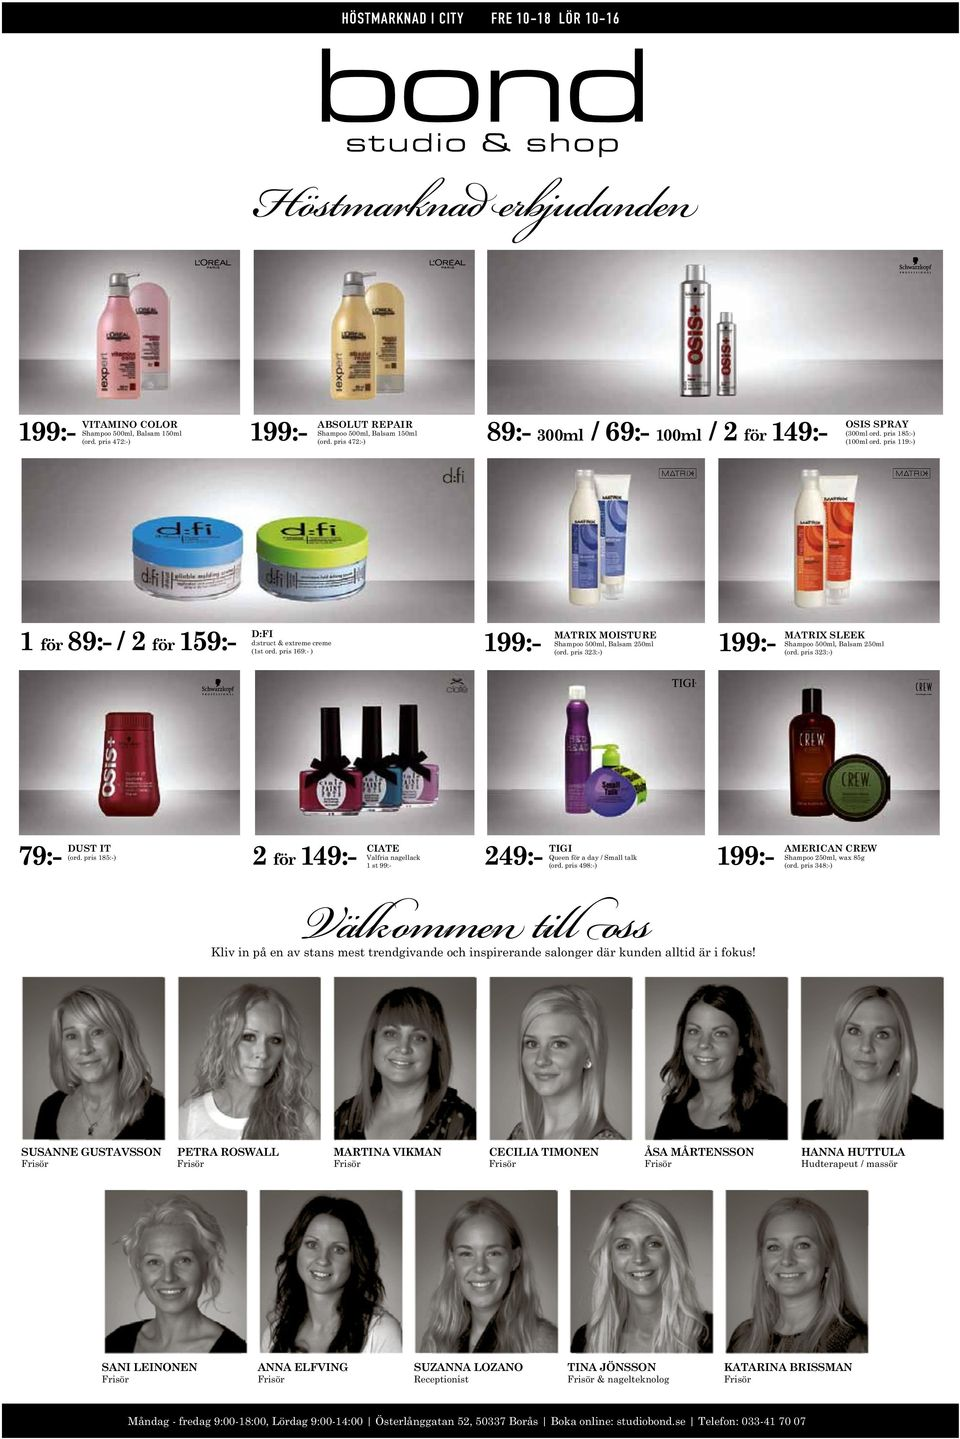 pris 169:- ) 199:- 199:- MATRIX MOISTURE Shampoo 500ml, Balsam 250ml (ord. pris 323:-) MATRIX SLEEK Shampoo 500ml, Balsam 250ml (ord.